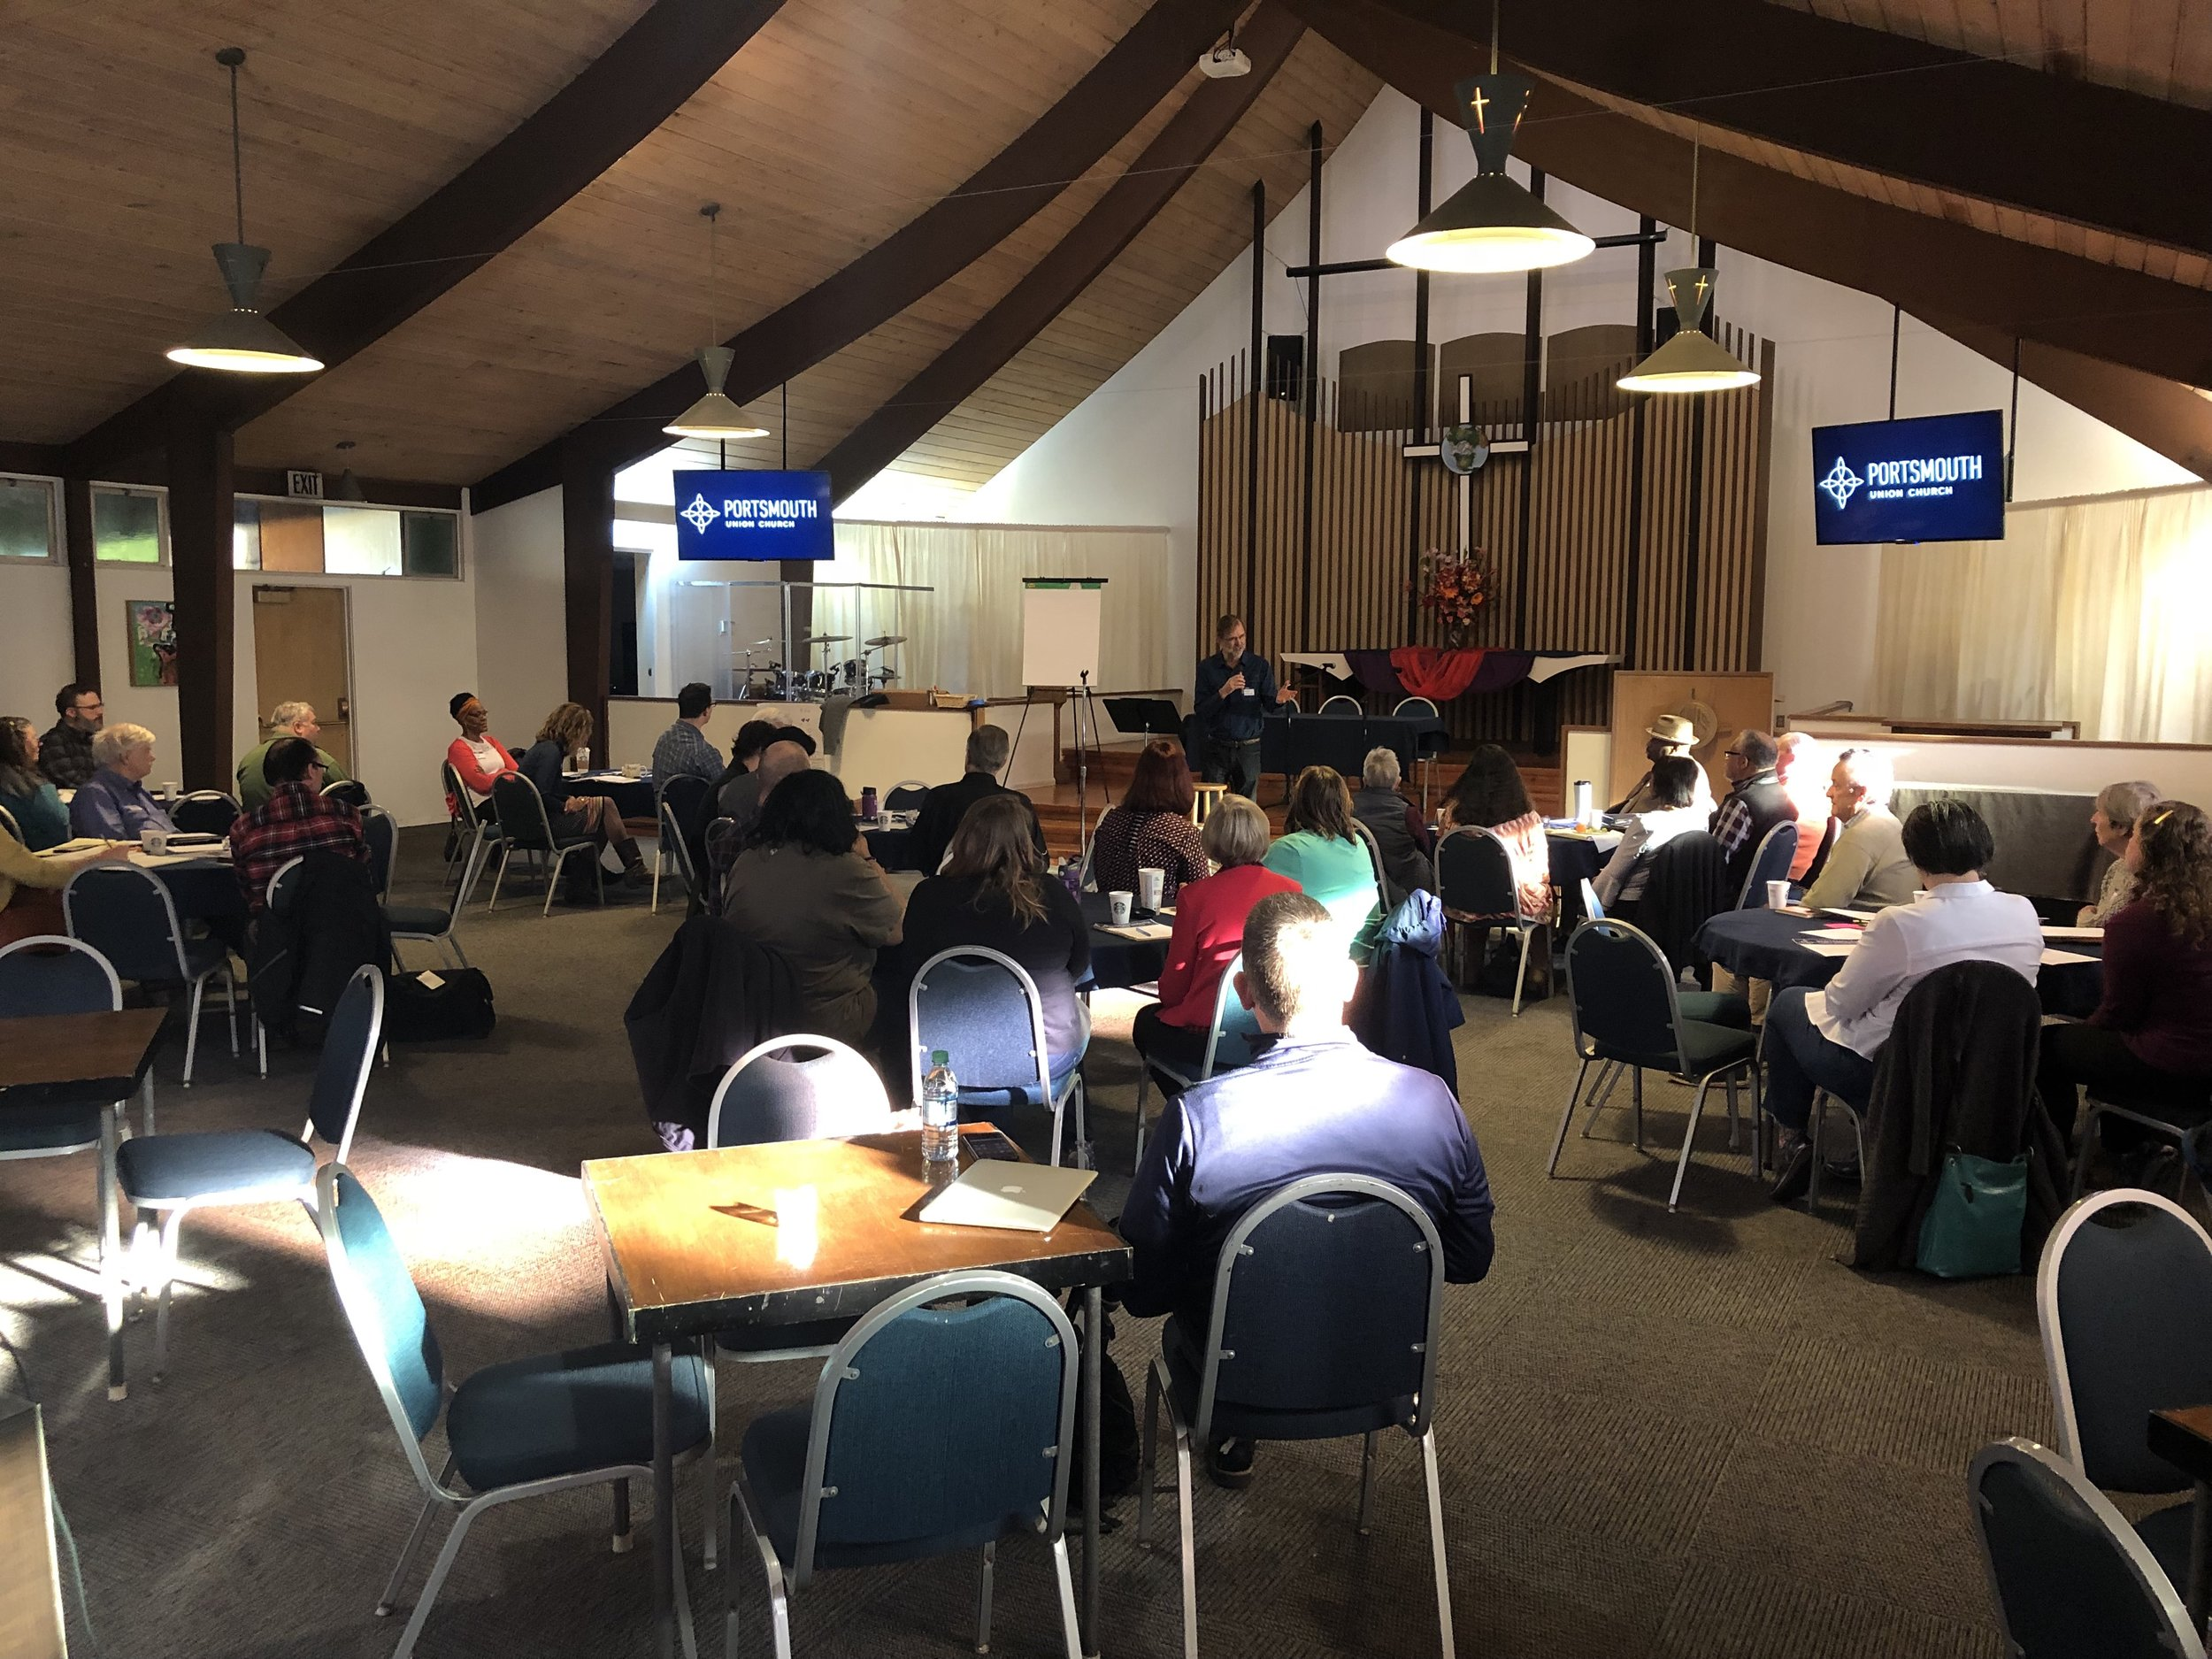 Churches Gather to Address Affordable Housing Crisis - UMOI | 10/29/2018Recently more than 40 individuals from congregations throughout the Greater Portland Area gathered to discuss how they could best address the affordable housing crisis. They met on October 13th at Portsmouth Union Church, which is led by Pastors Julia Nielsen and Andy Goebel.[Read More...]